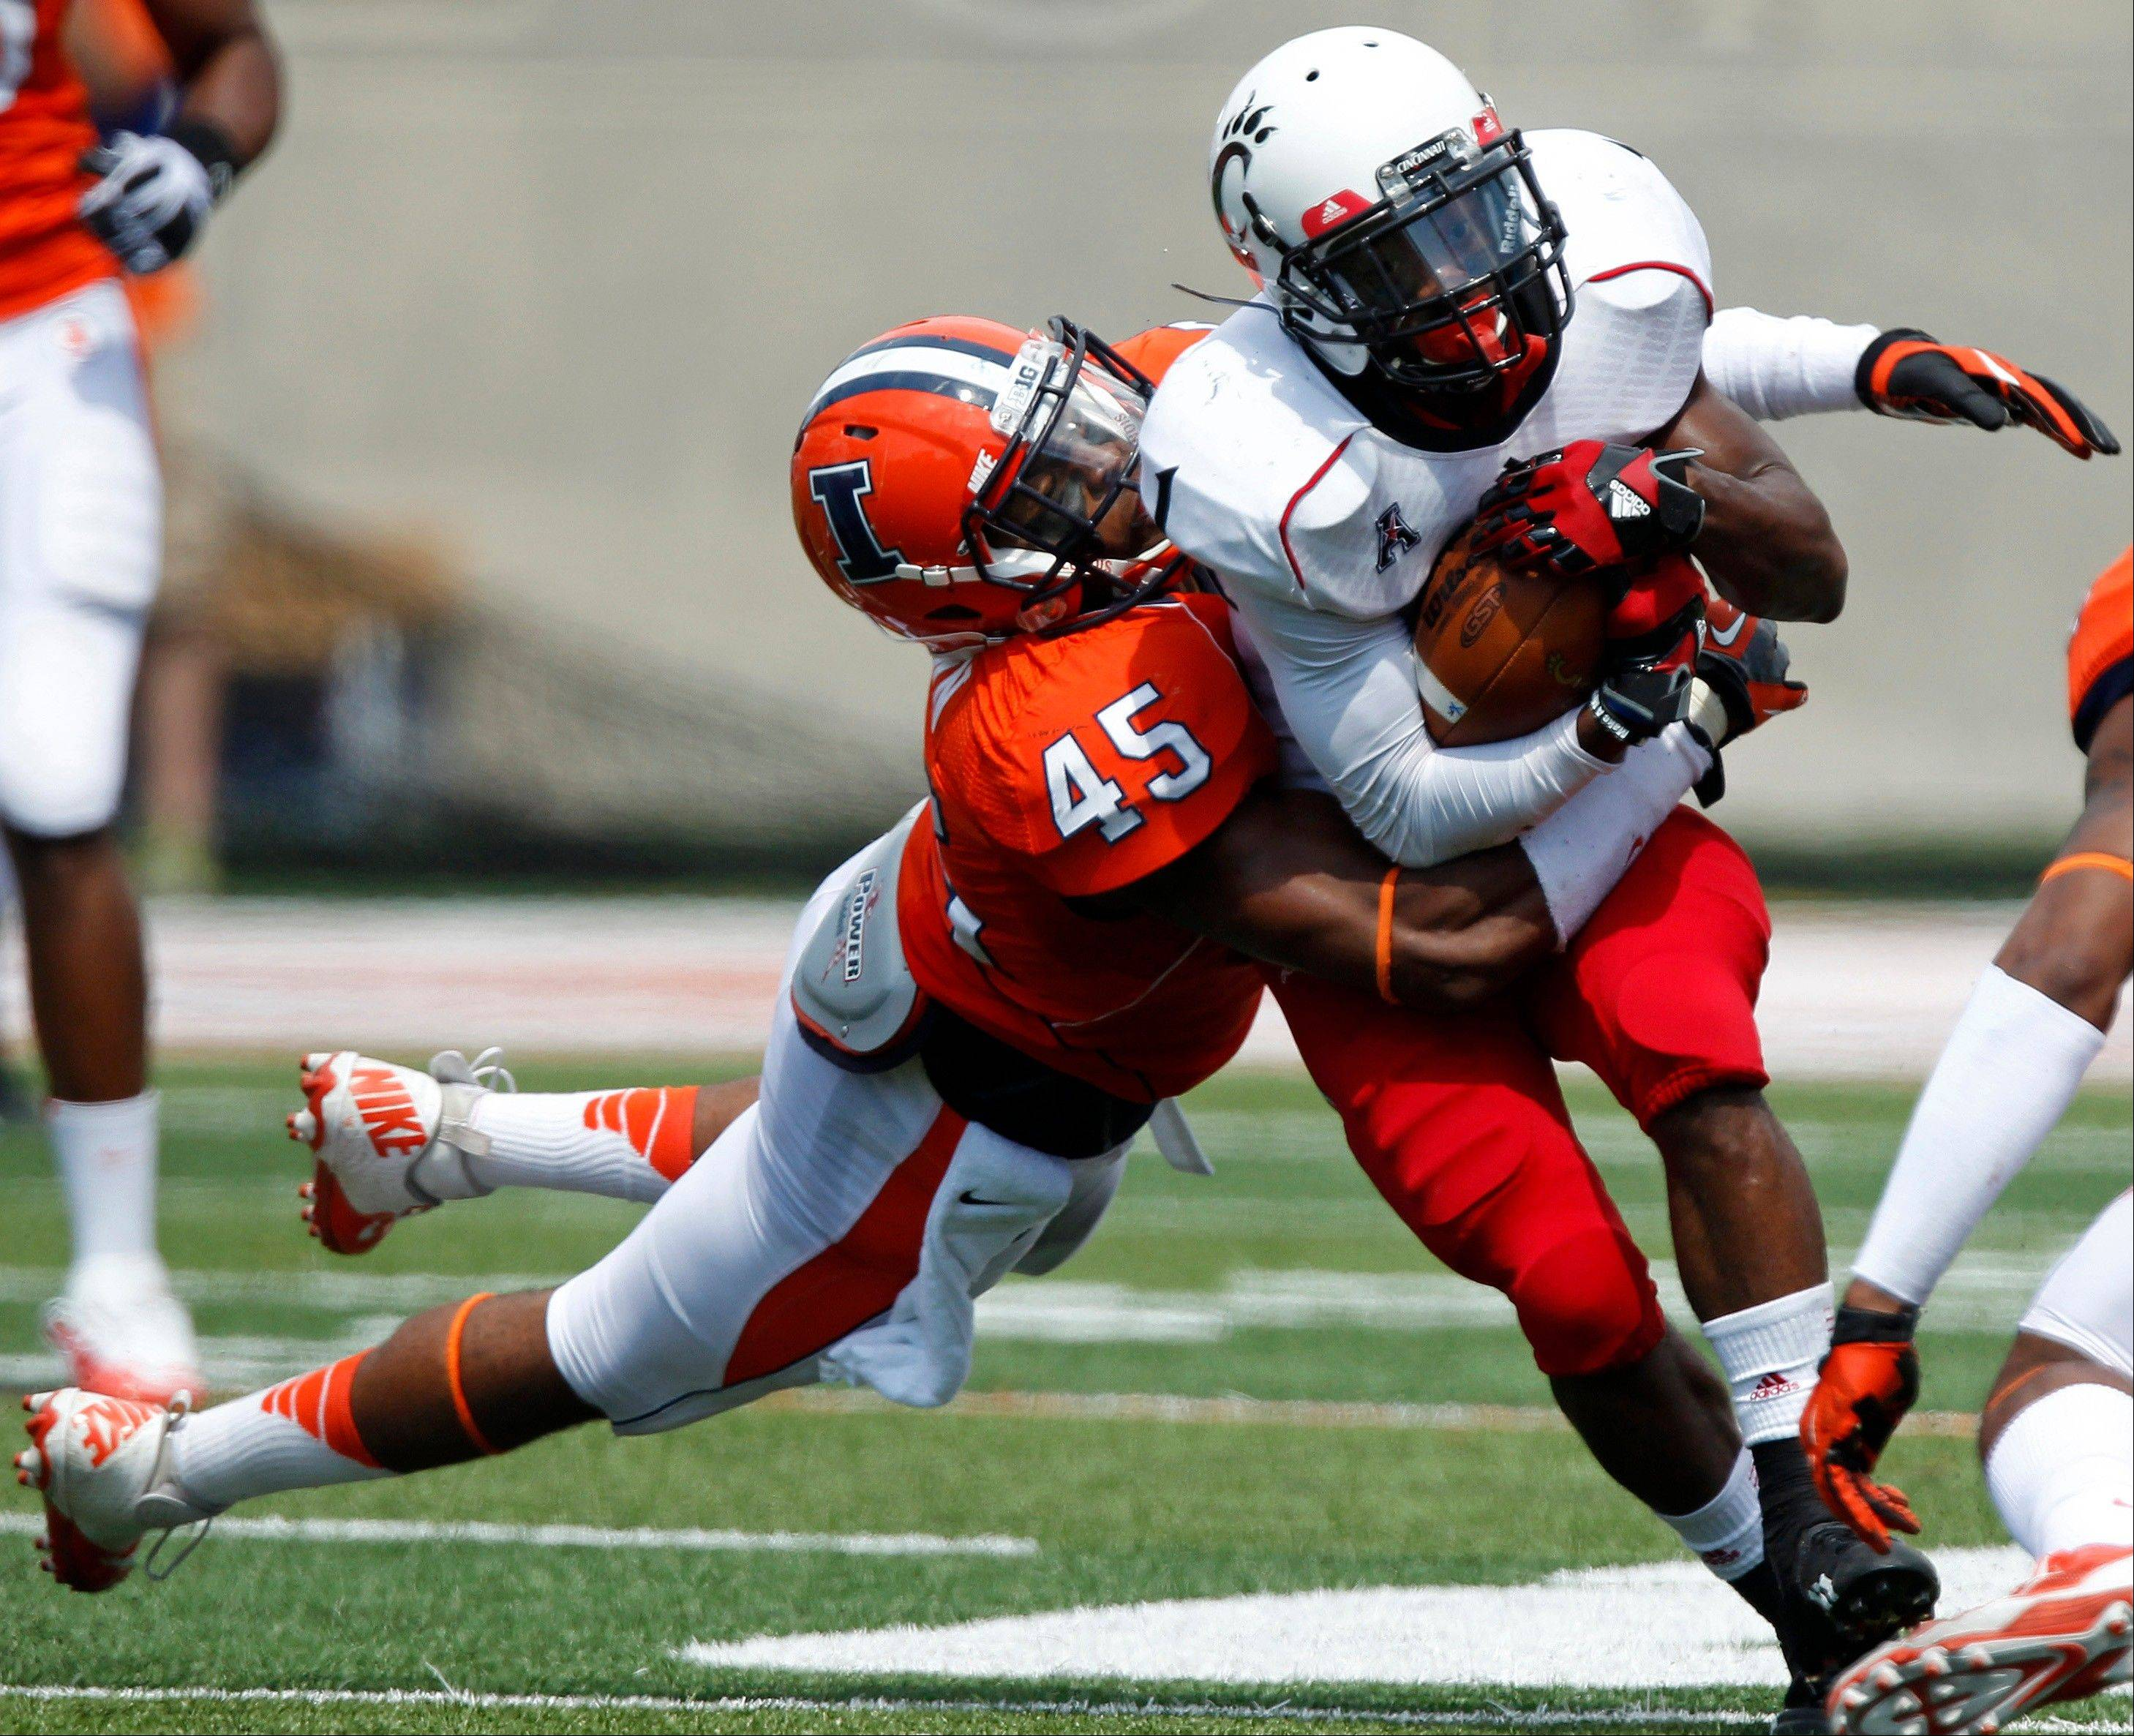 Illinois linebacker Jonathan Brown tackles Cincinnati running back Ralph Abernathy earlier this season.